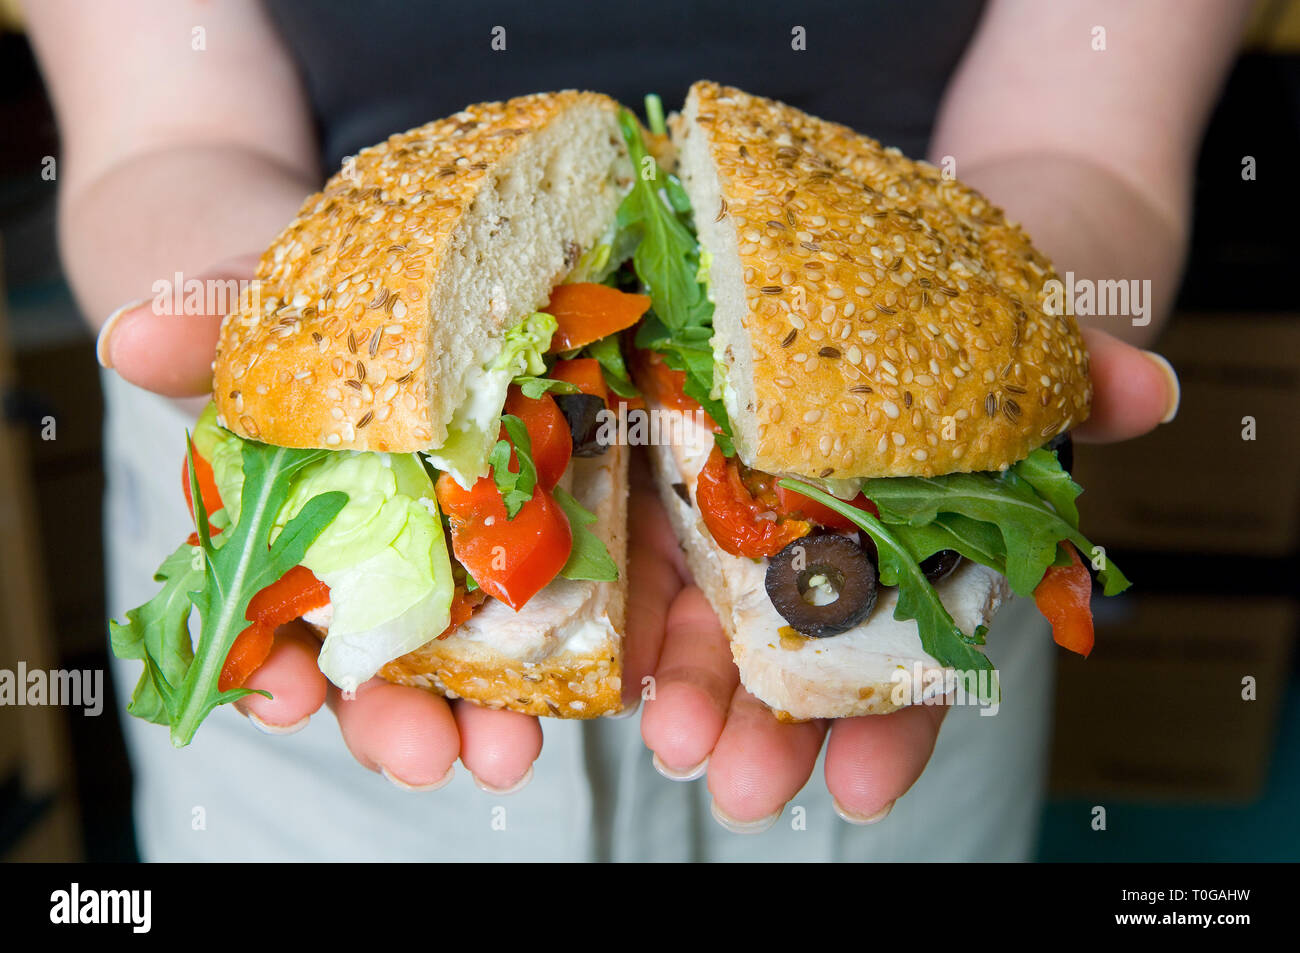 A delicious sandwich, roll, with lots of fresh ingredients, fillings. Stock Photo